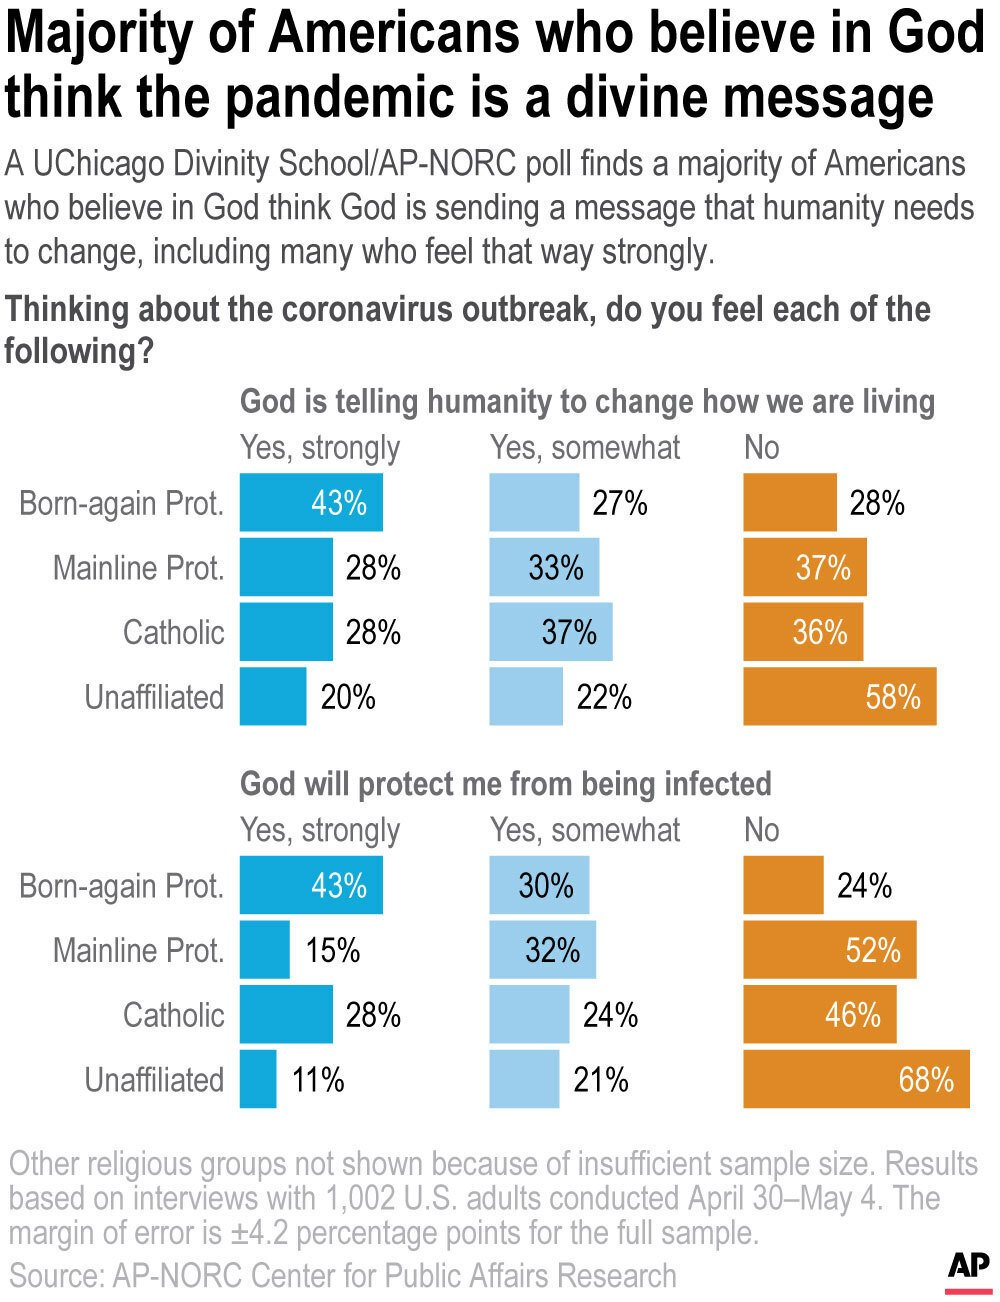 Searching for deeper meaning in this coronavirus pandemic plague, poll shows almost two-thirds of American believers of all faiths feel that God is telling humanity to change how it lives